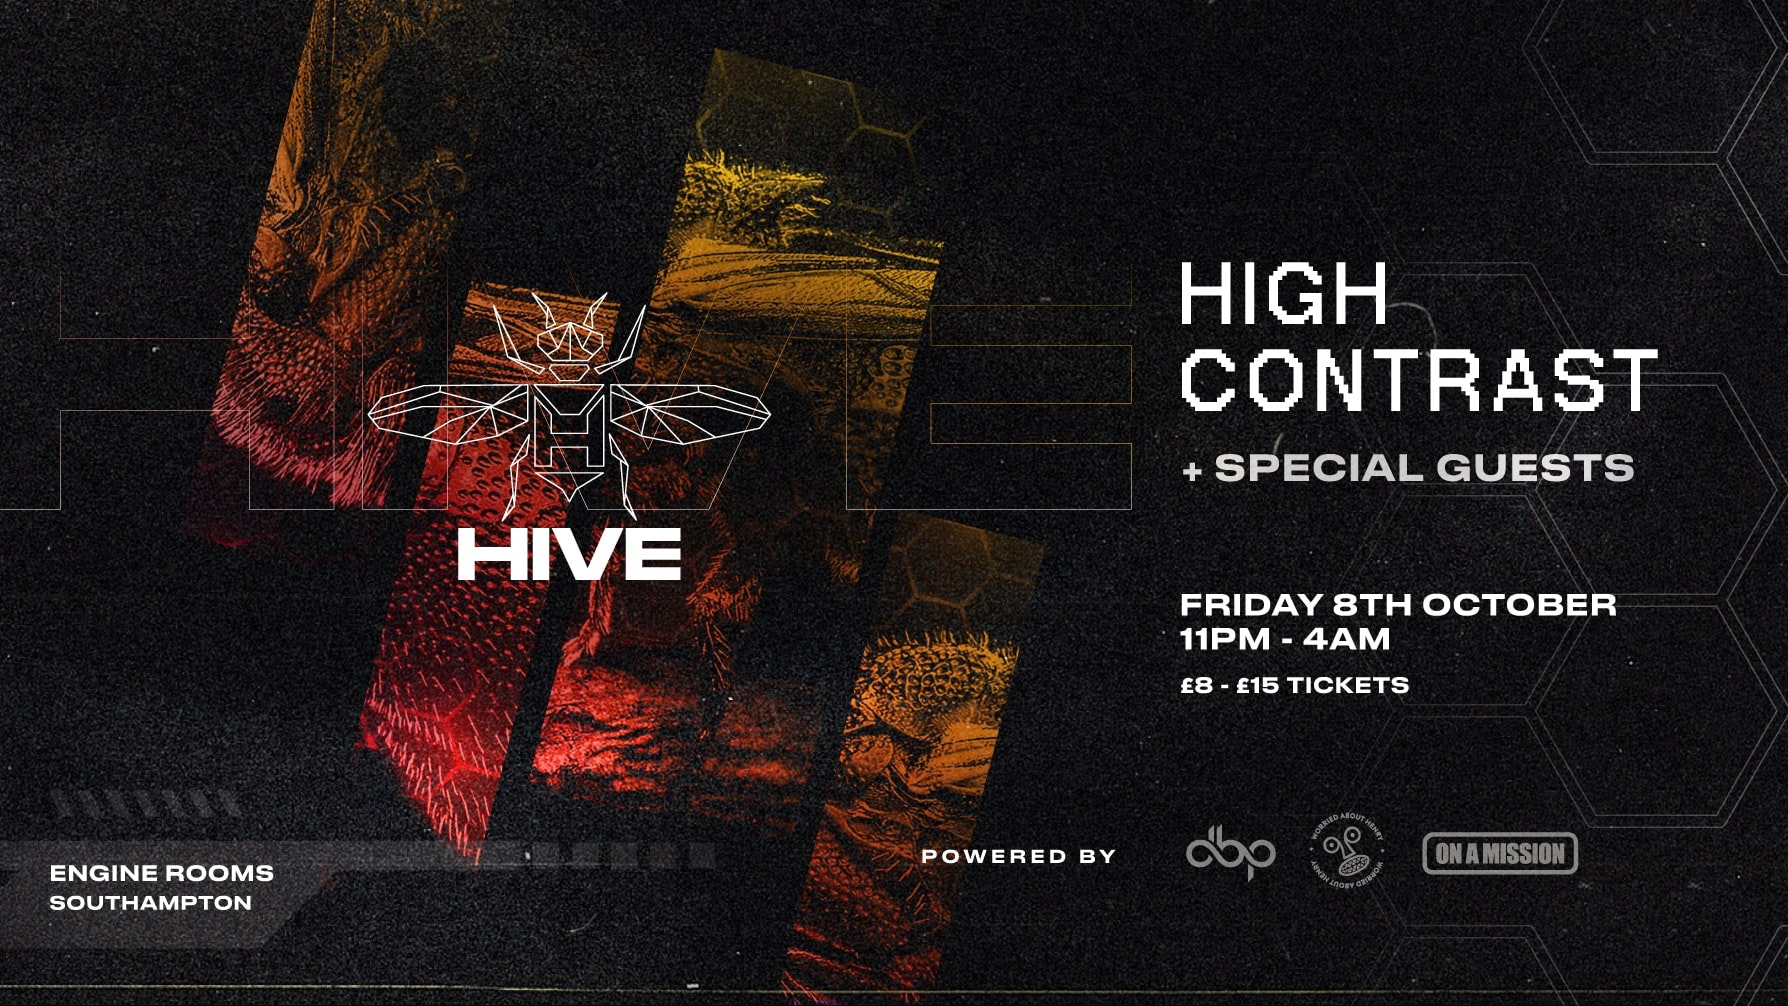 Friday 8th Oct: Hive presents:  High Contrast + Guests